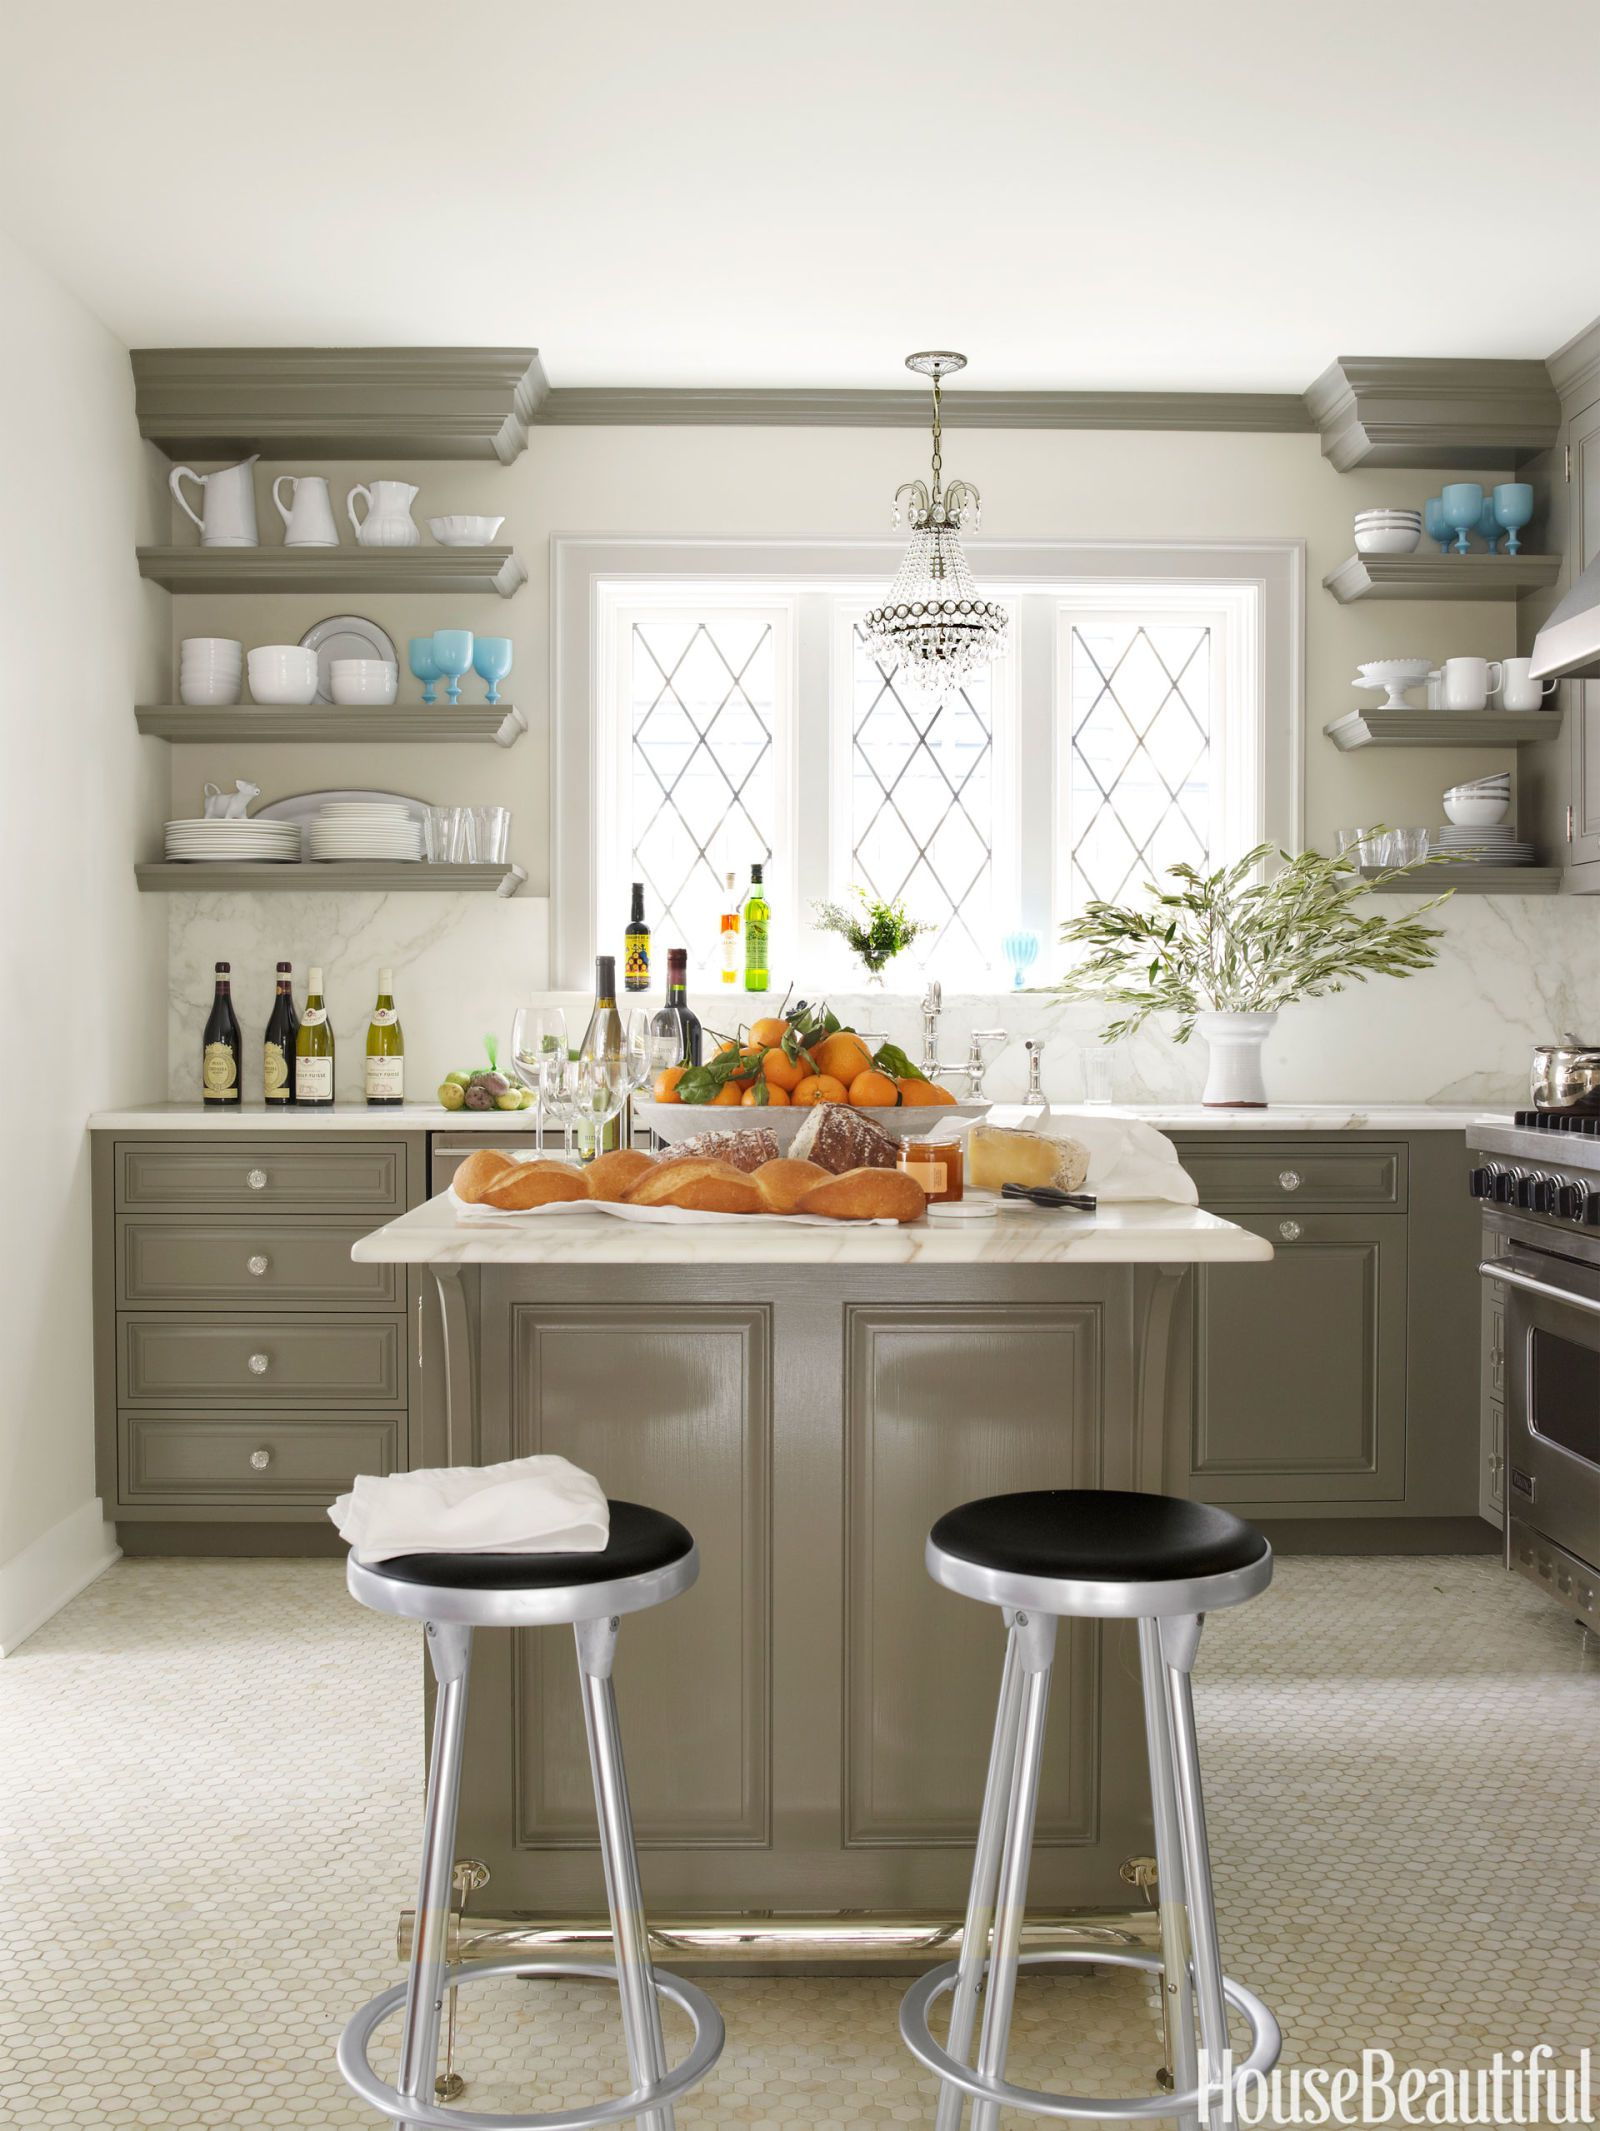 50 Chic Home Decorating Ideas - Easy Interior Design And Decor Tips To Try